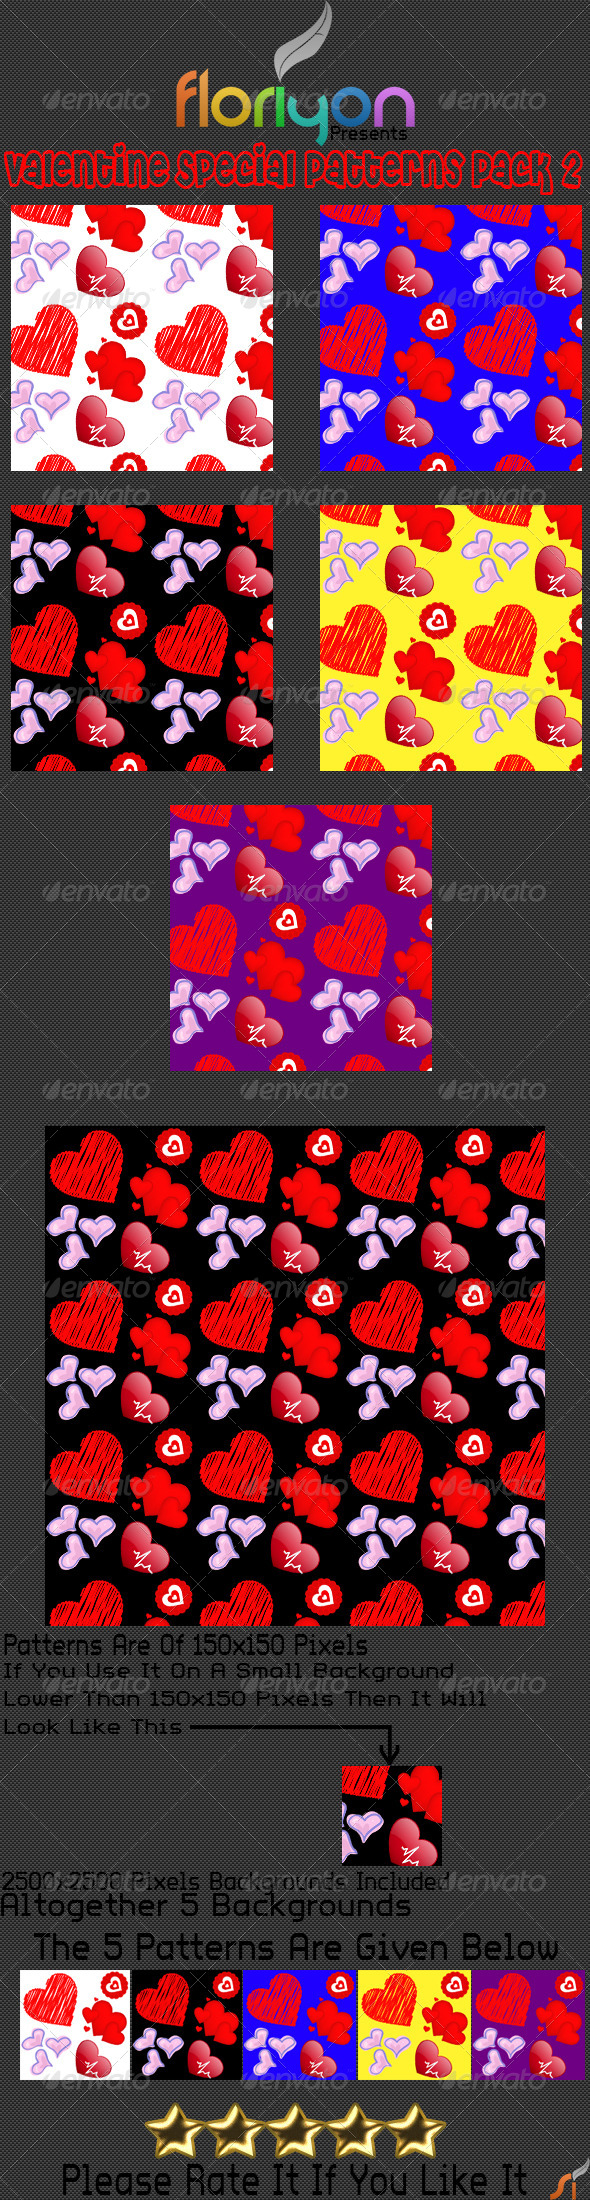 GraphicRiver Valentine Special Patterns Pack 2 4903503